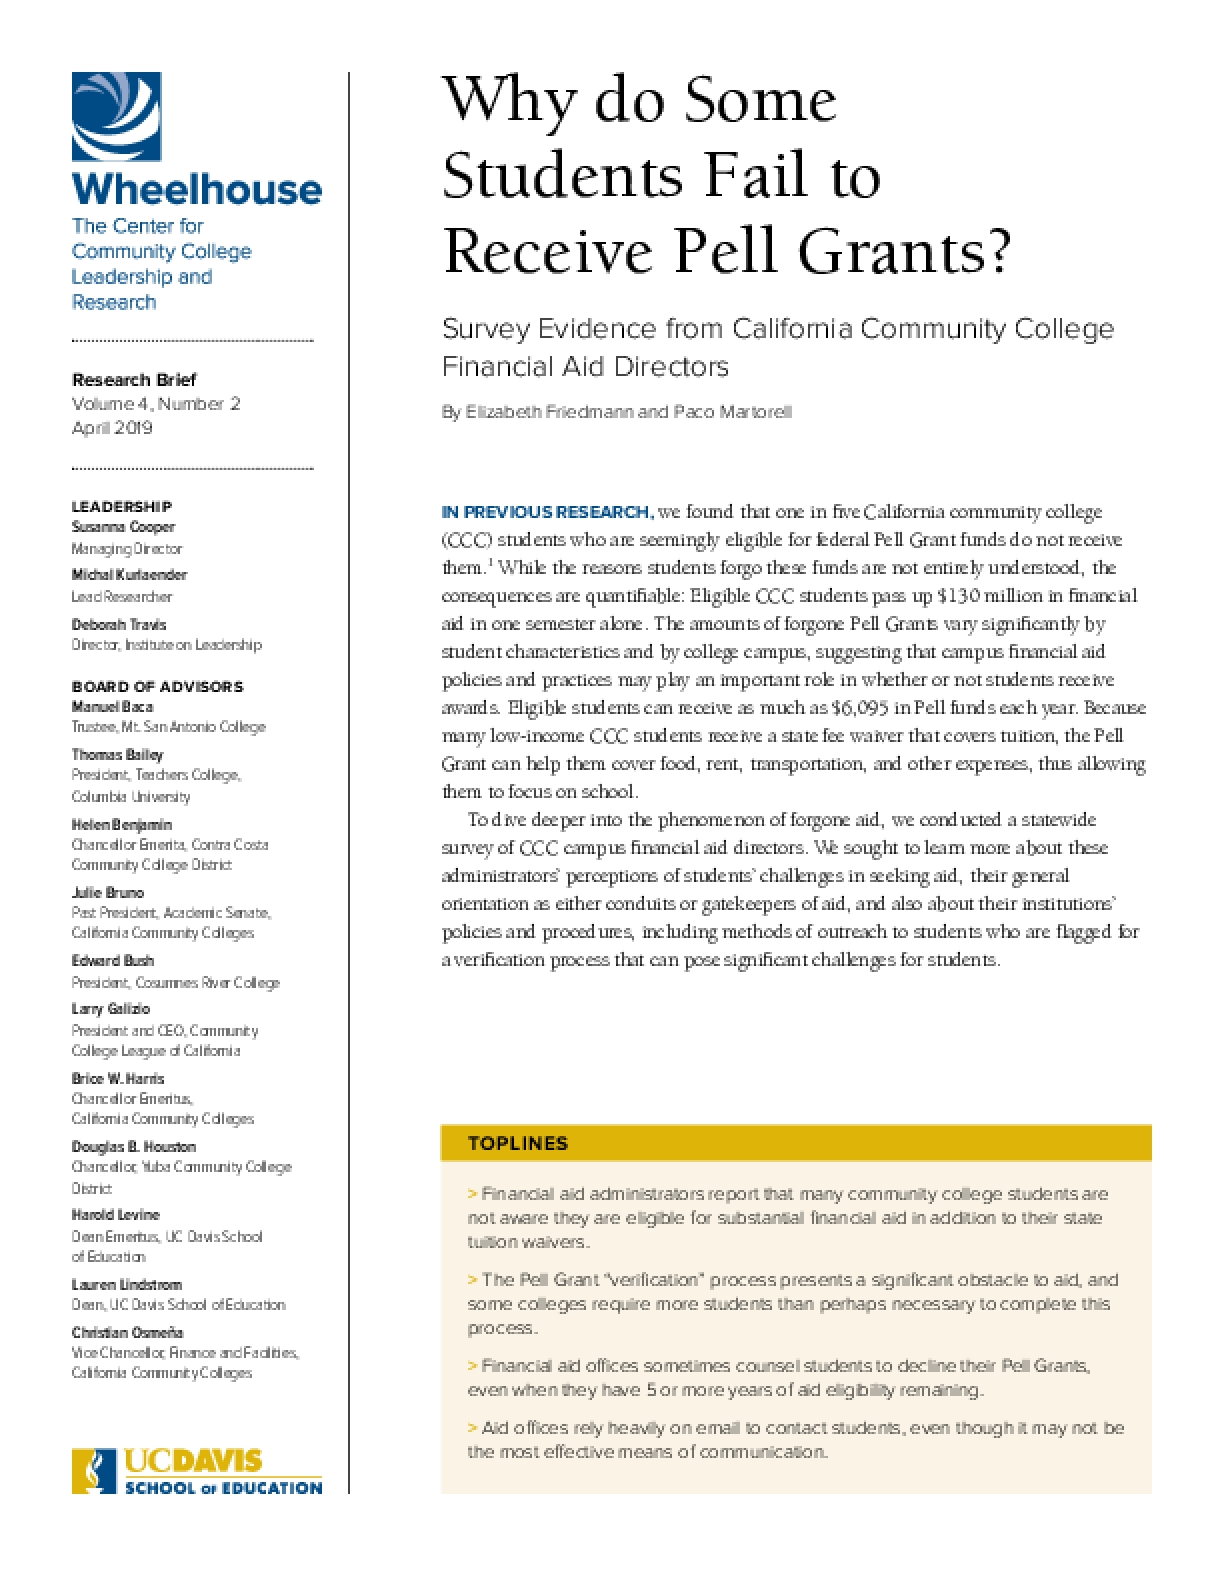 Why Do Some Students Fail to Receive Pell Grants?